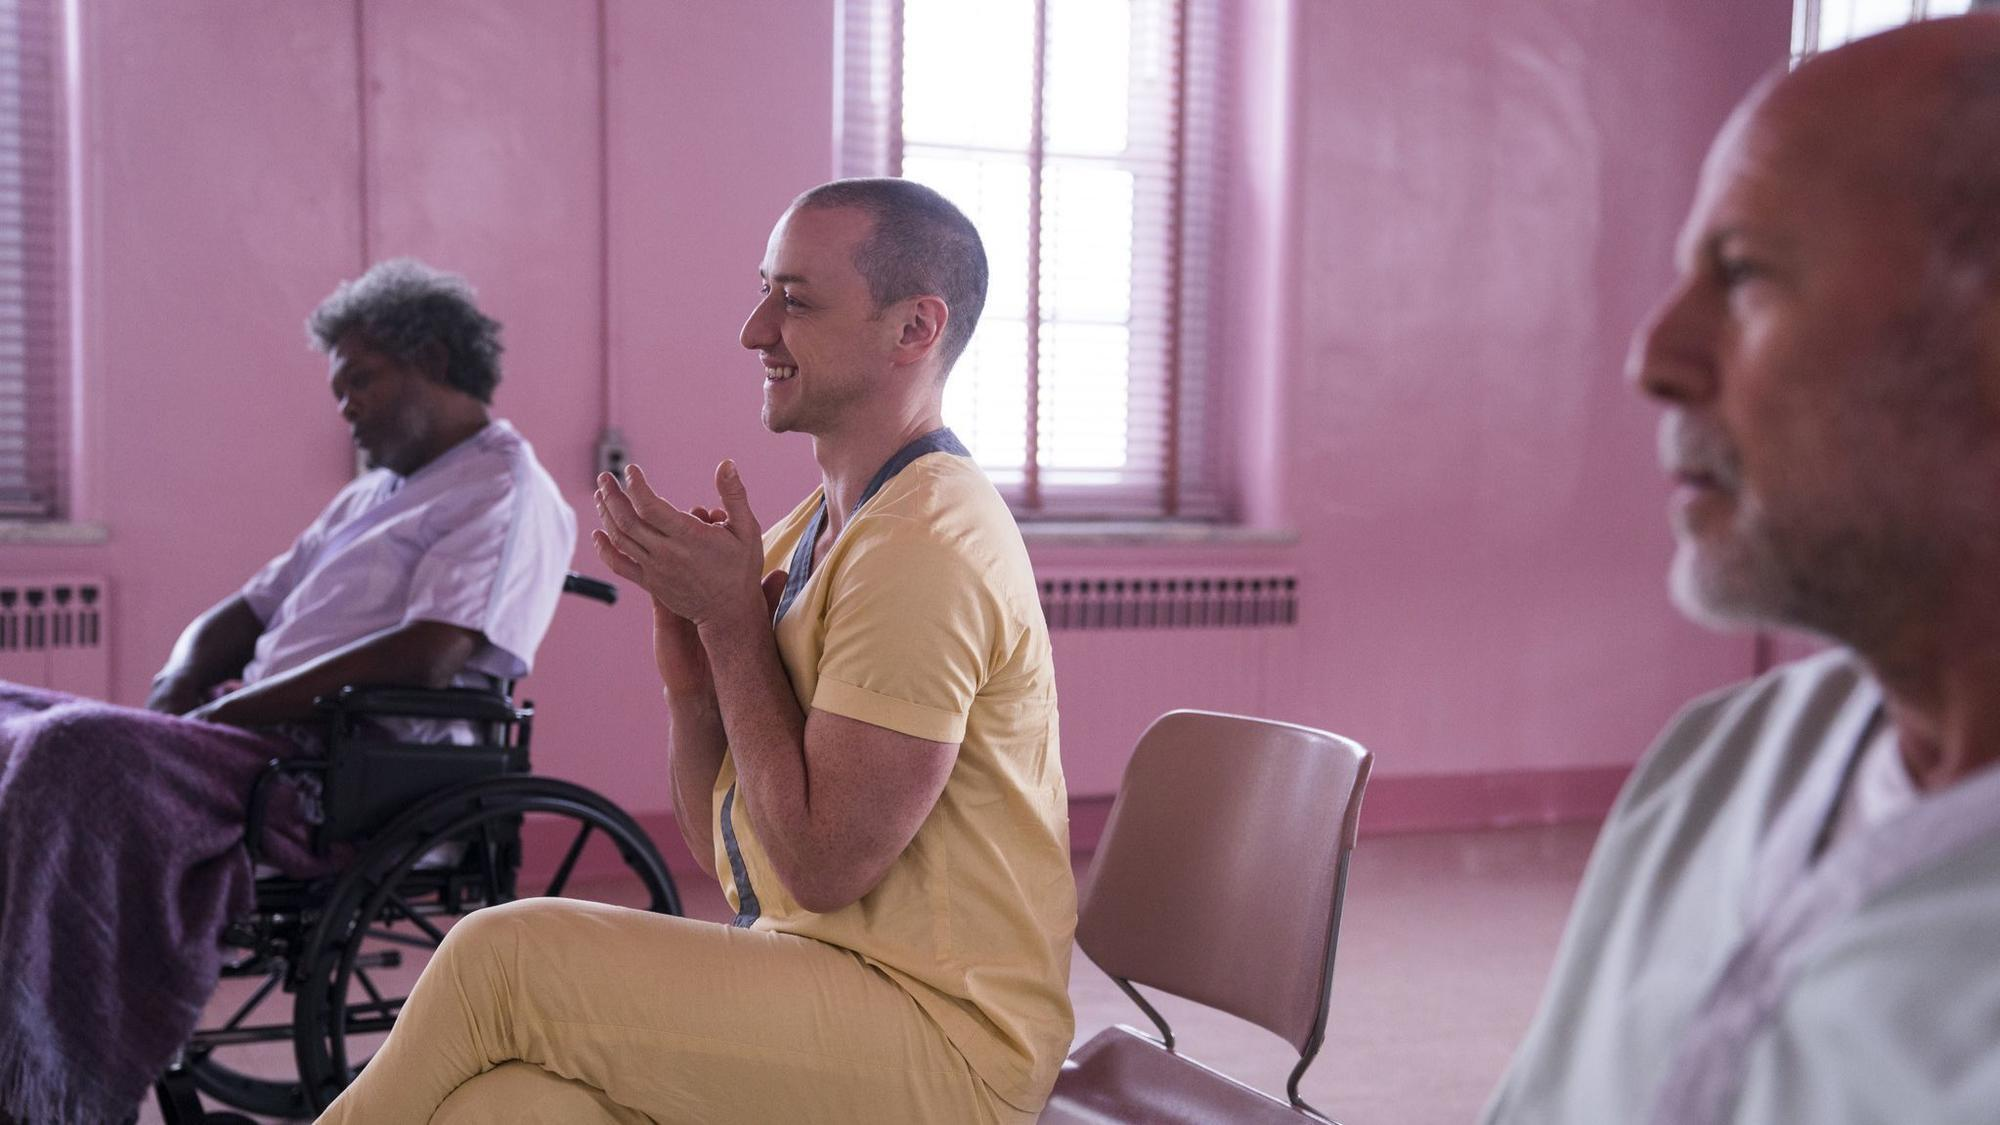 Review: M. Night Shyamalan's eccentric thriller 'Glass' doesn't break new ground